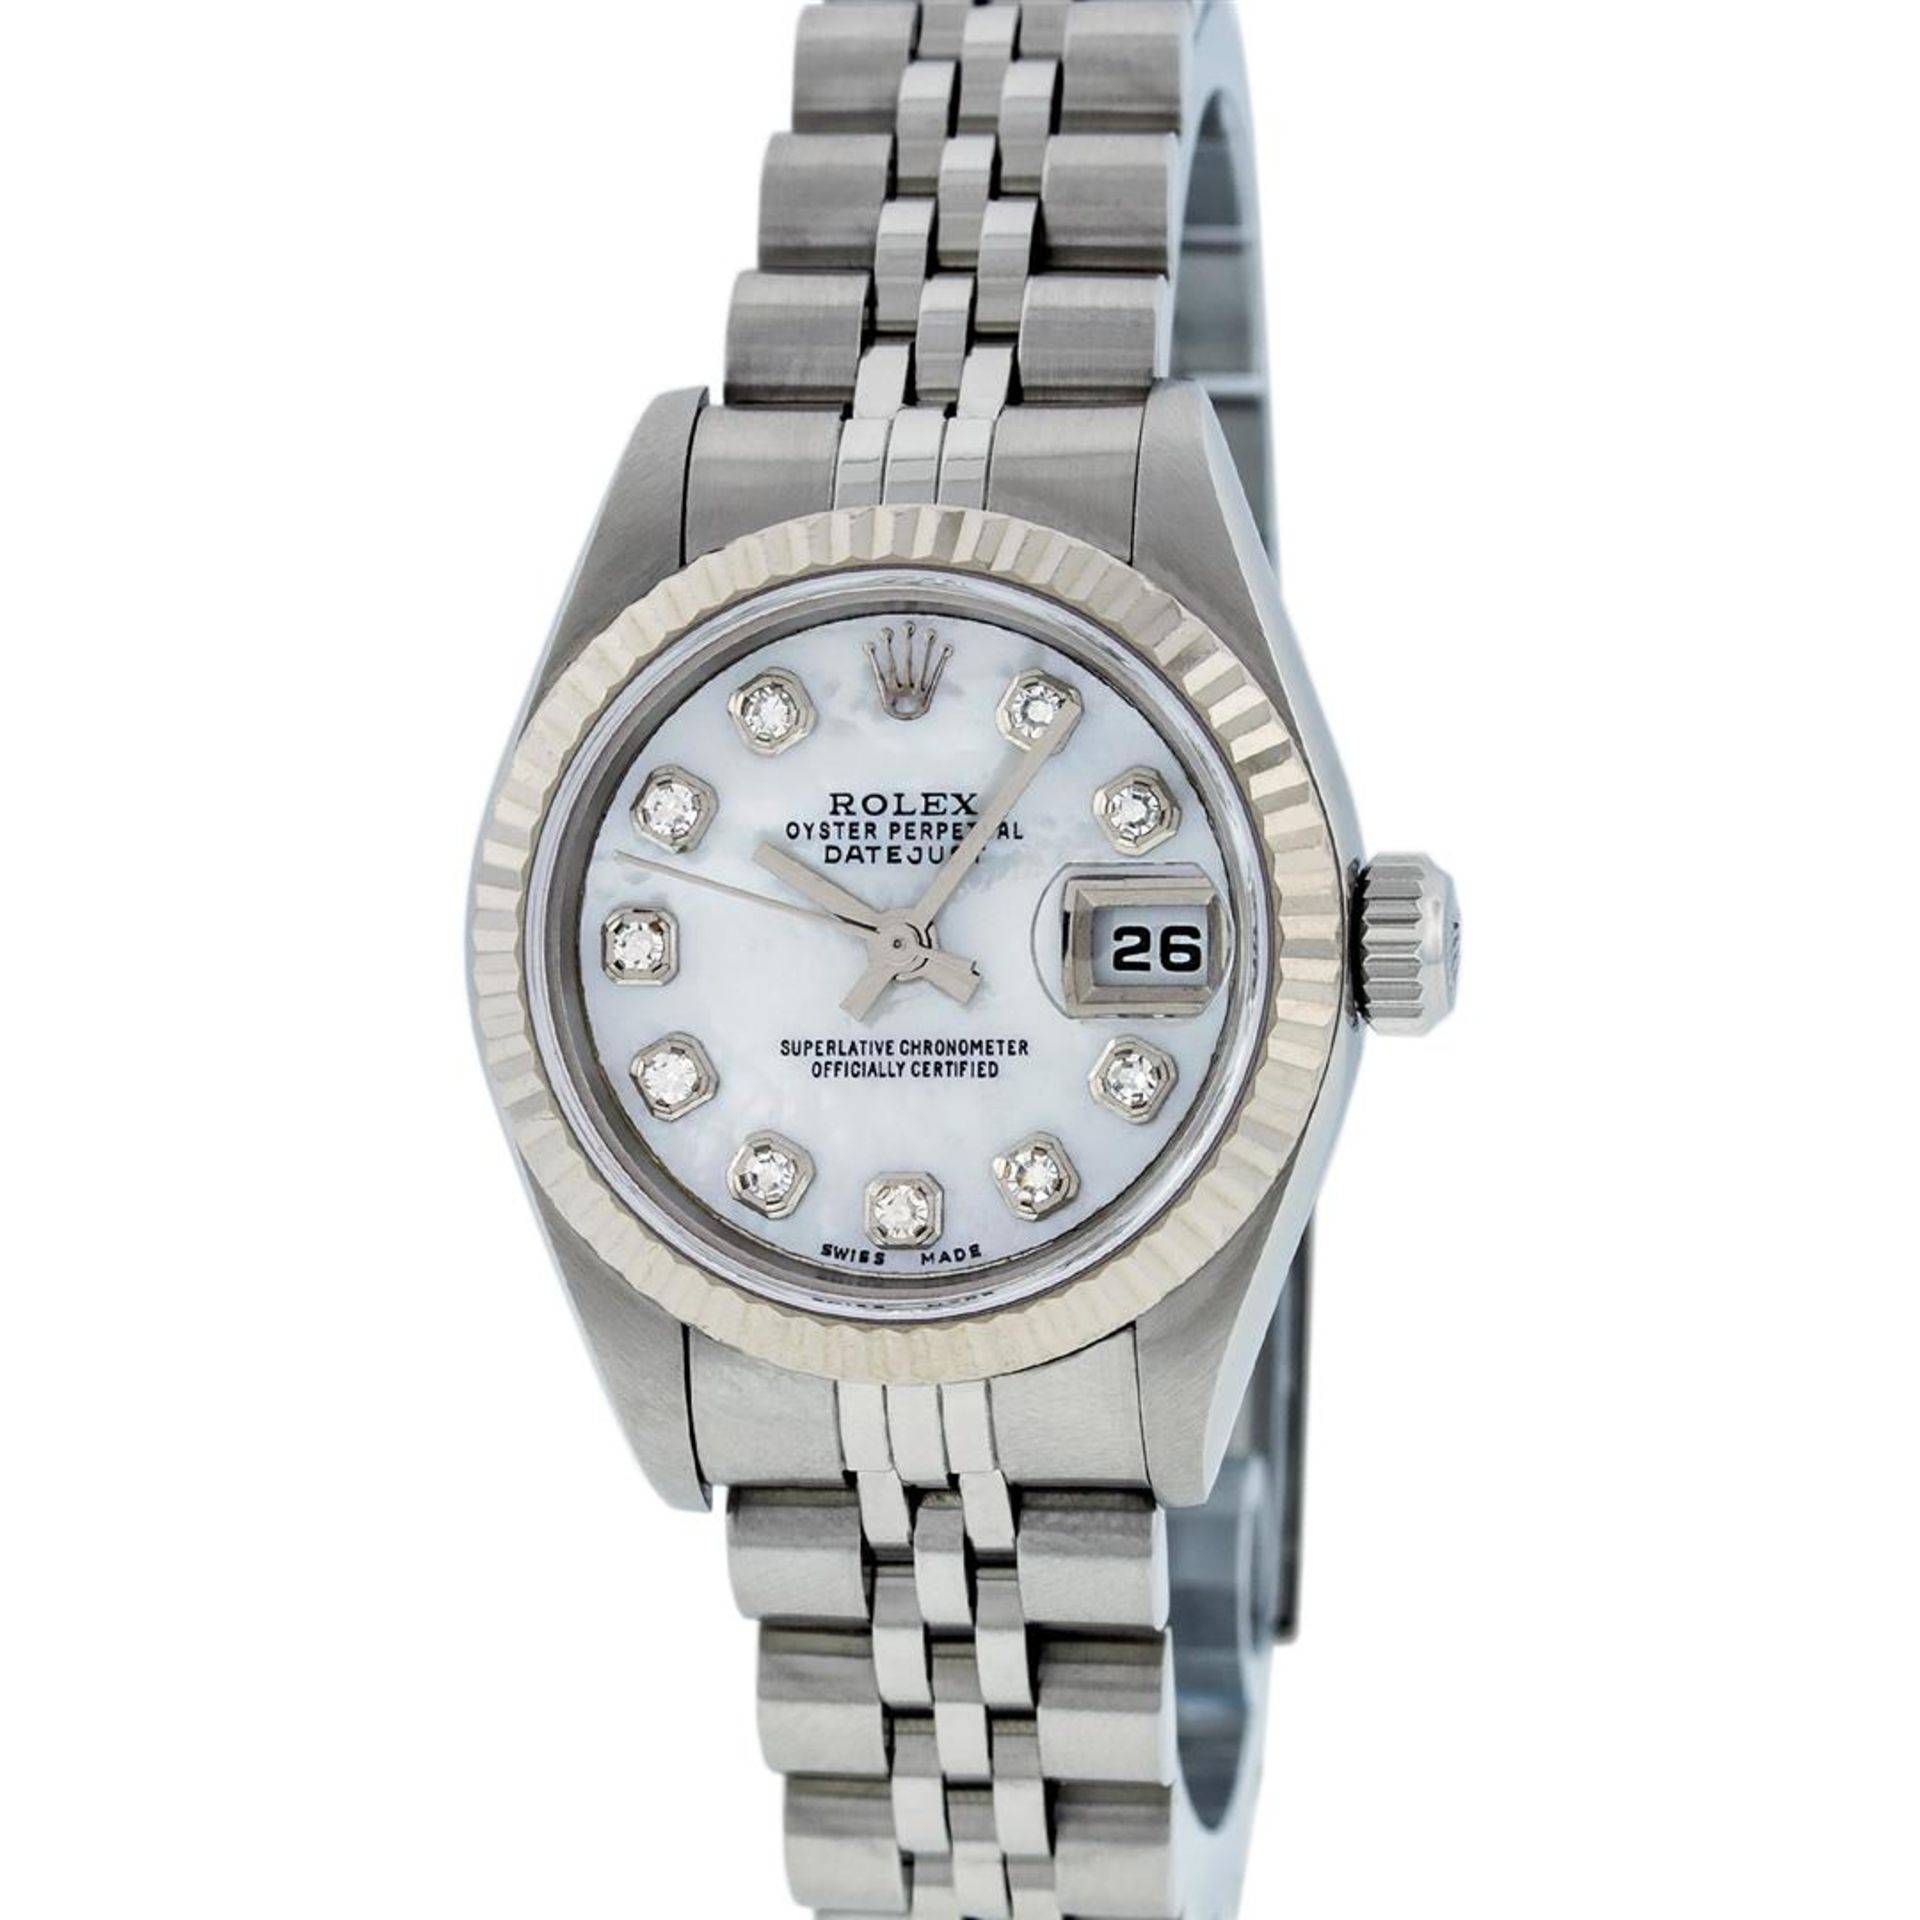 Rolex Ladies Stainless Steel Mother Of Pearl Diamond Quickset Datejust Wristwatc - Image 3 of 9